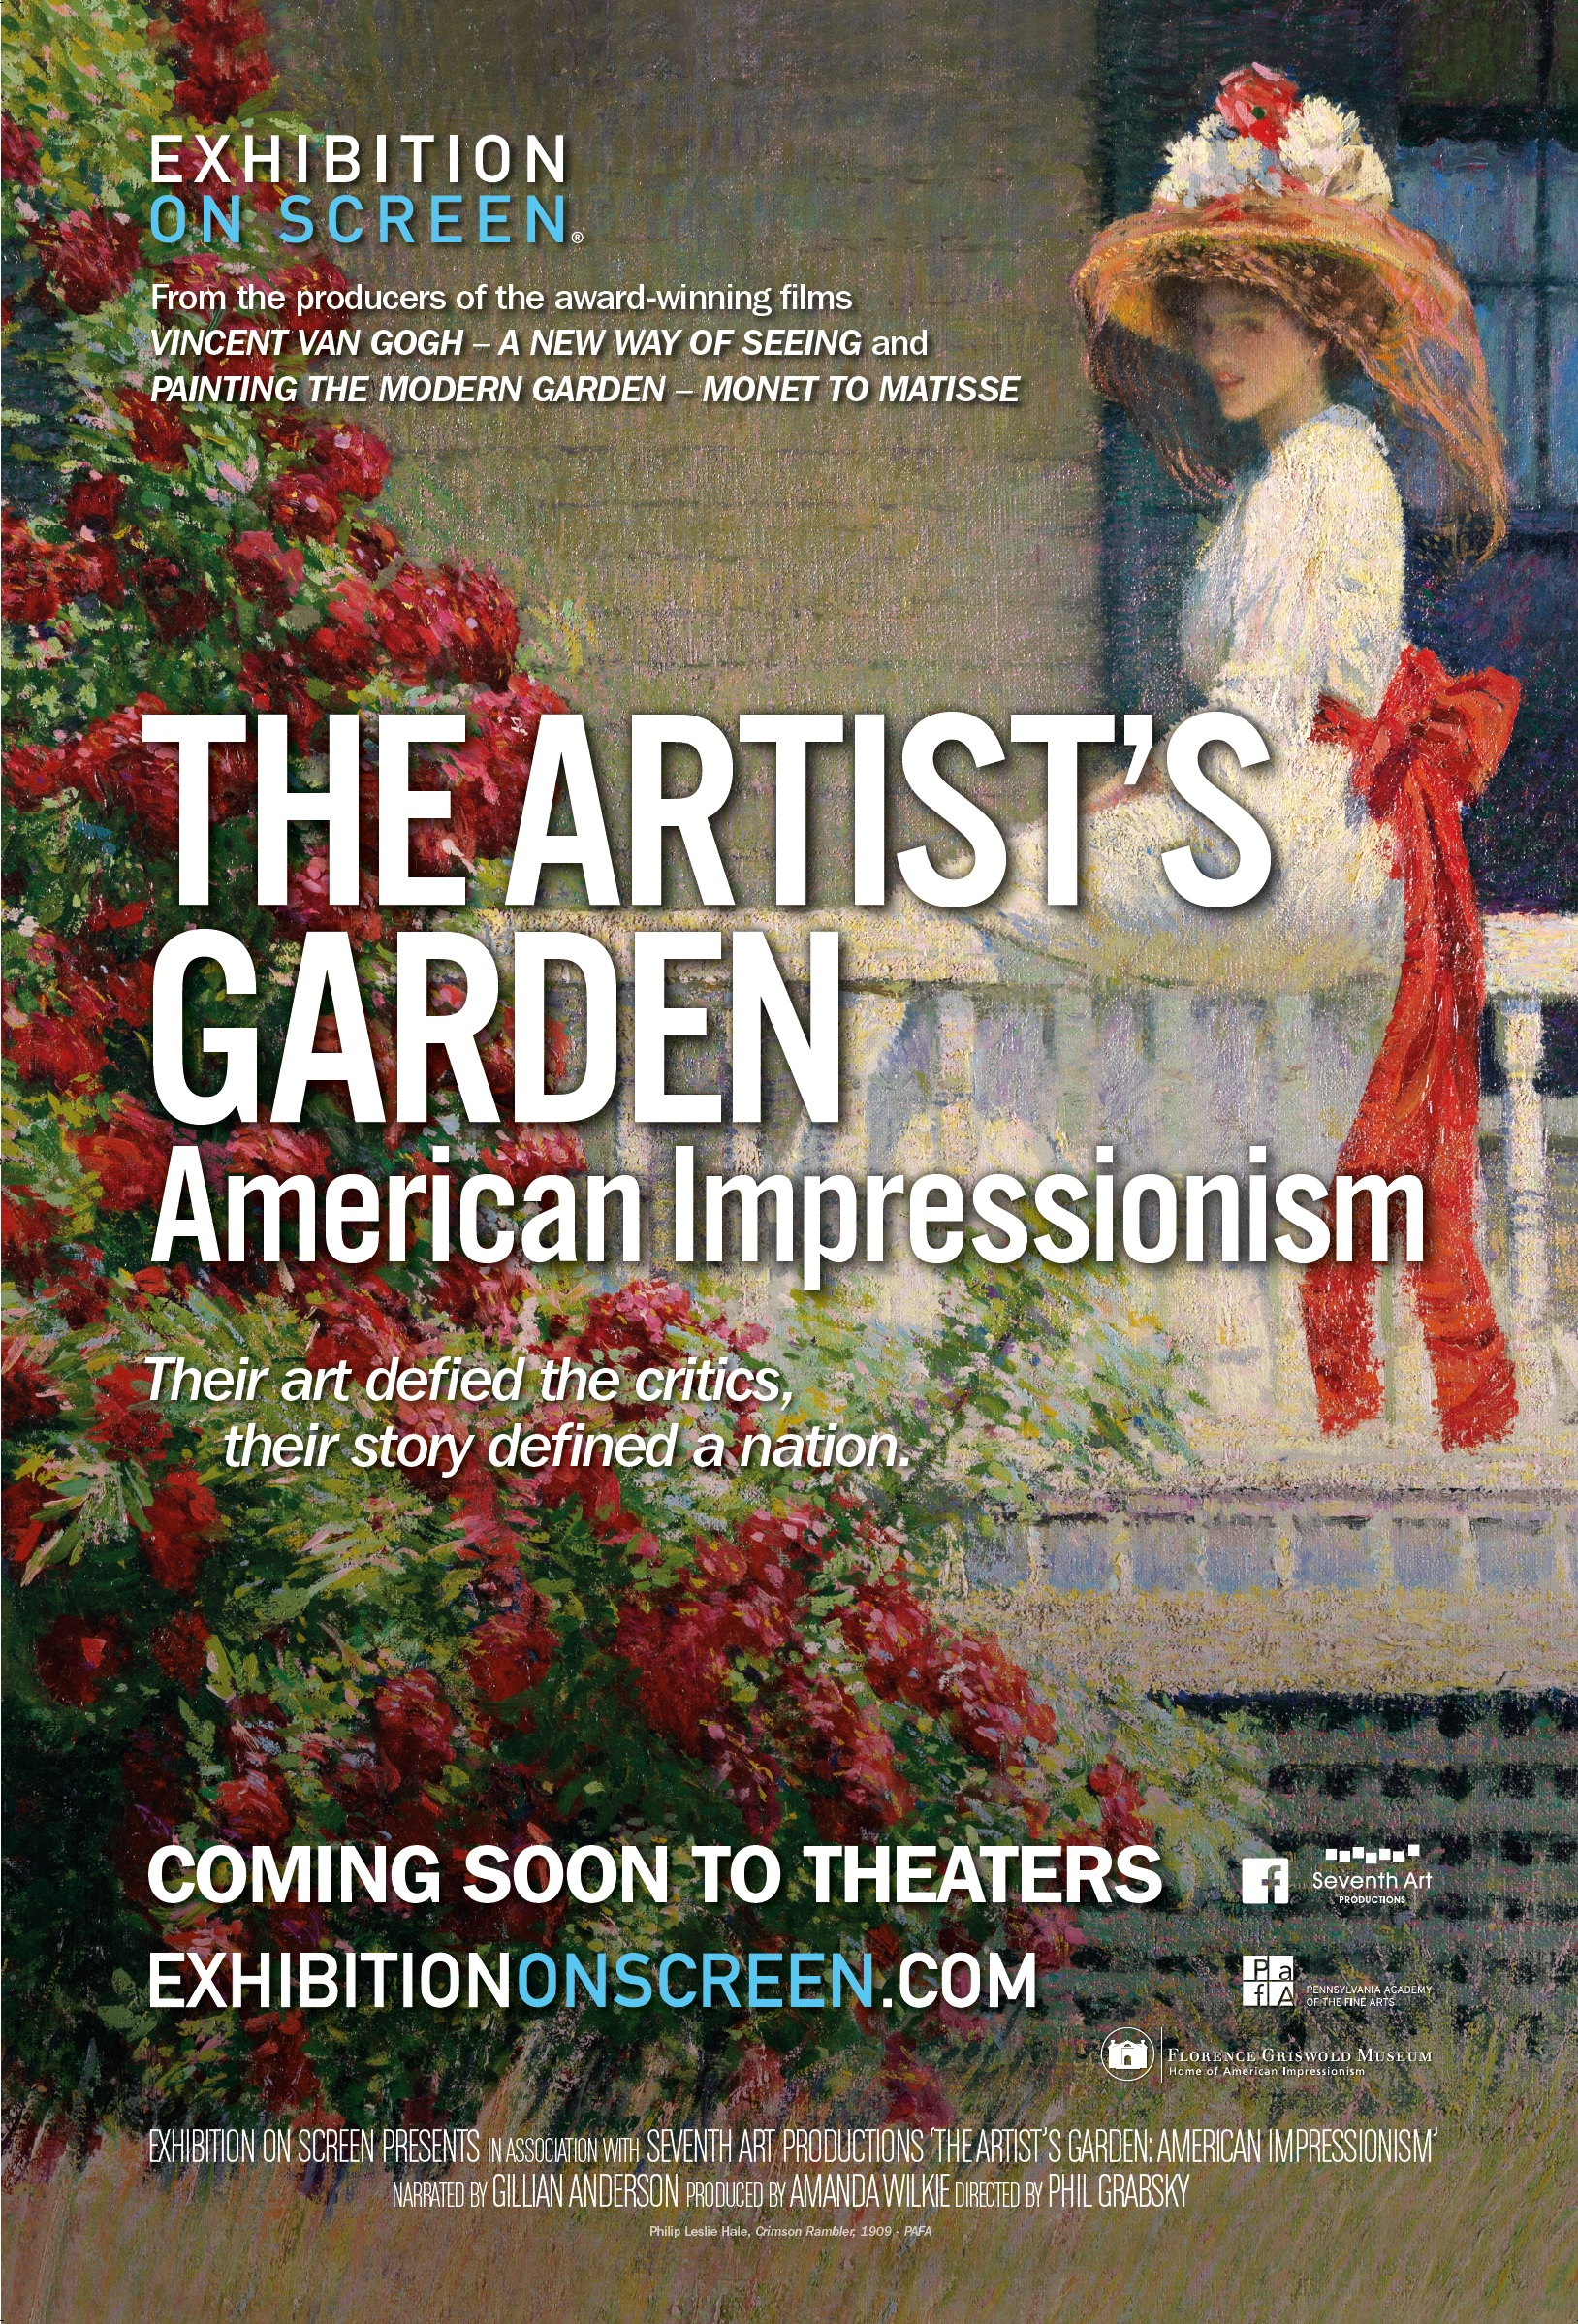 Exhibition on Screen: The Artists Garden: American Impressionism